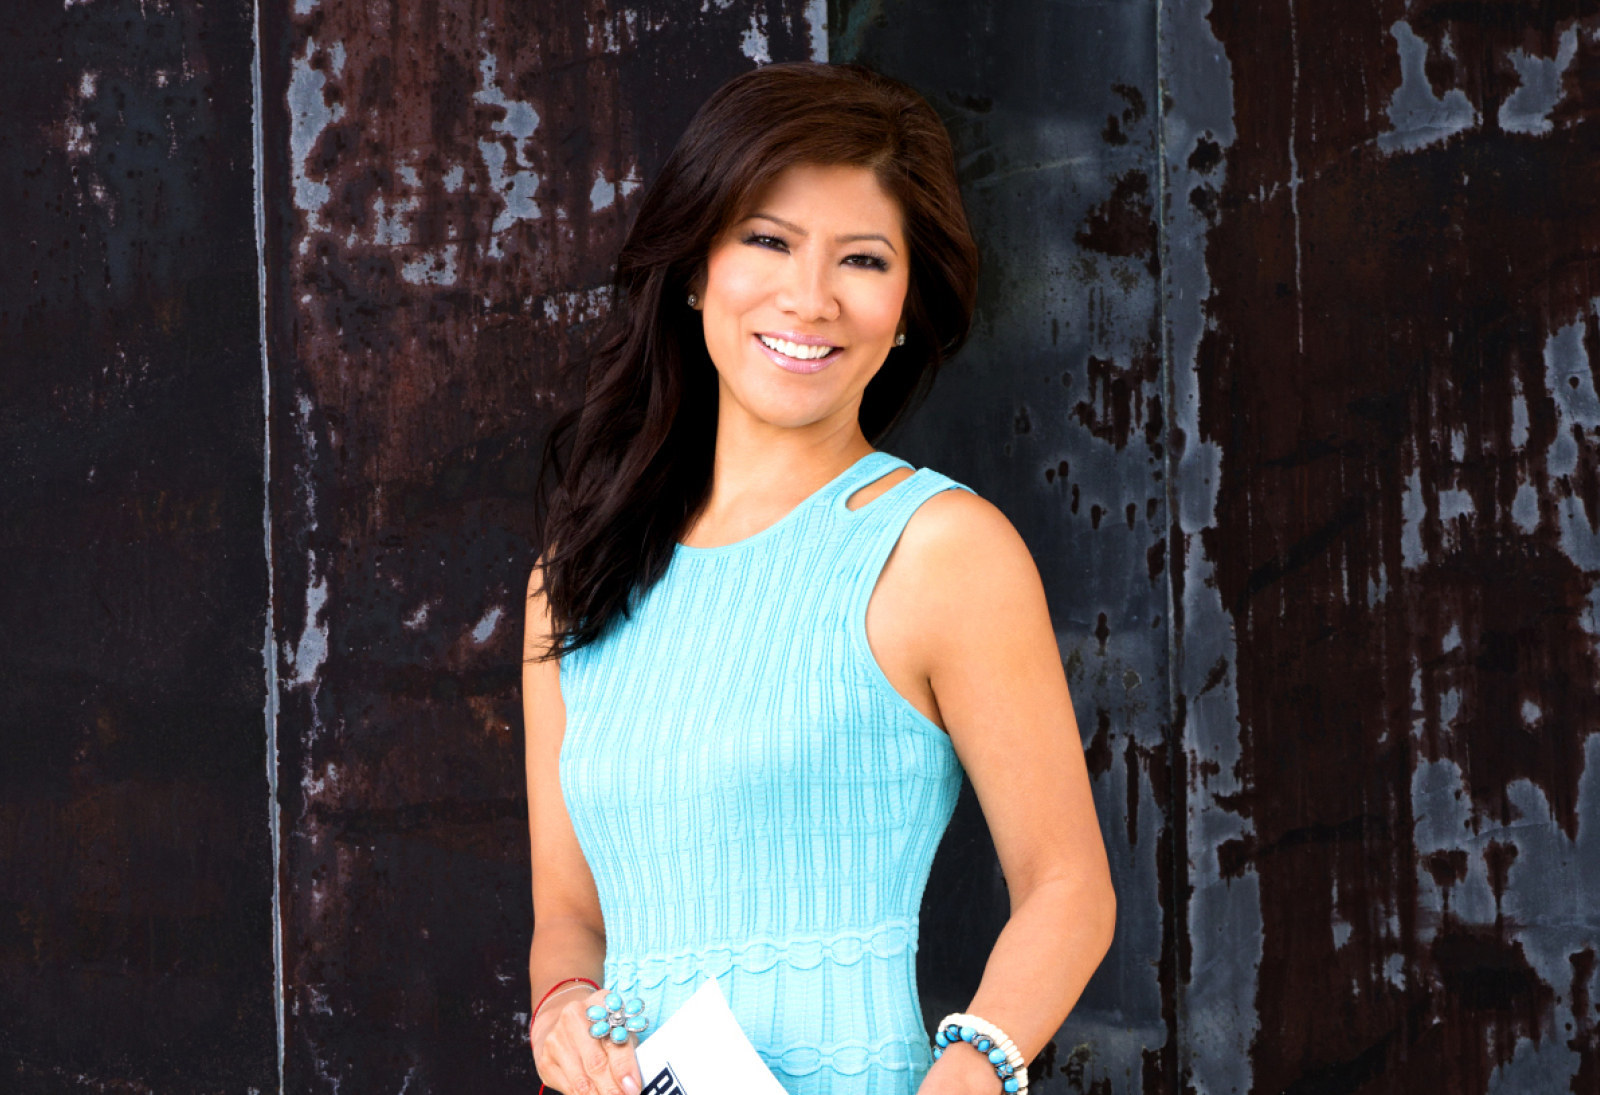 Julie Chen Wiki,Bio,Age,Profile,Images,Boyfriend, Big Brother Host | Full Details